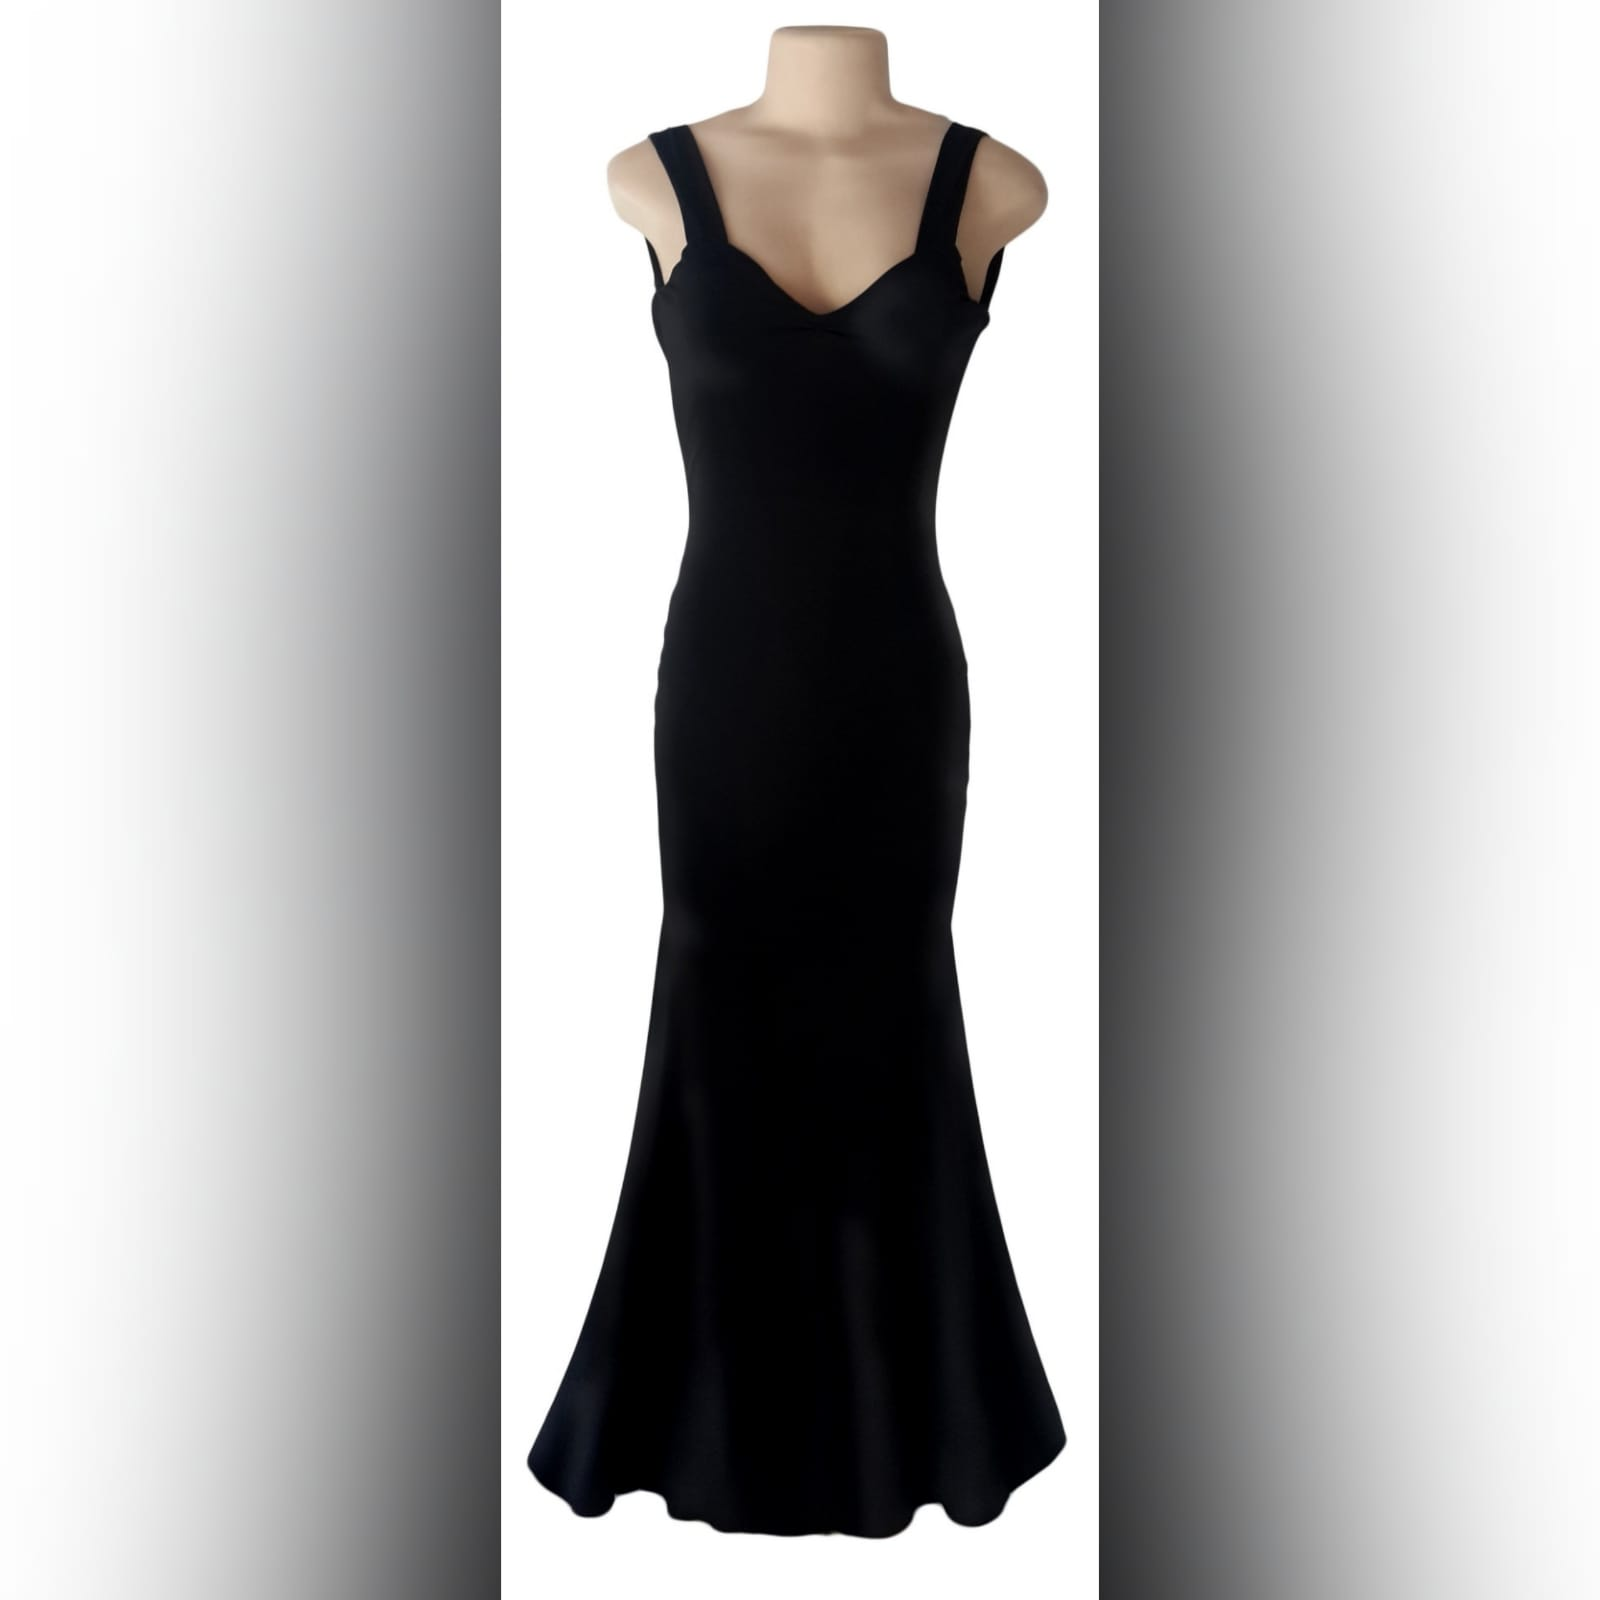 Black sexy evening dress fitted till the hip 4 black sexy evening dress fitted till the hip, with a low v open back. Straps with a sweetheart neckline.